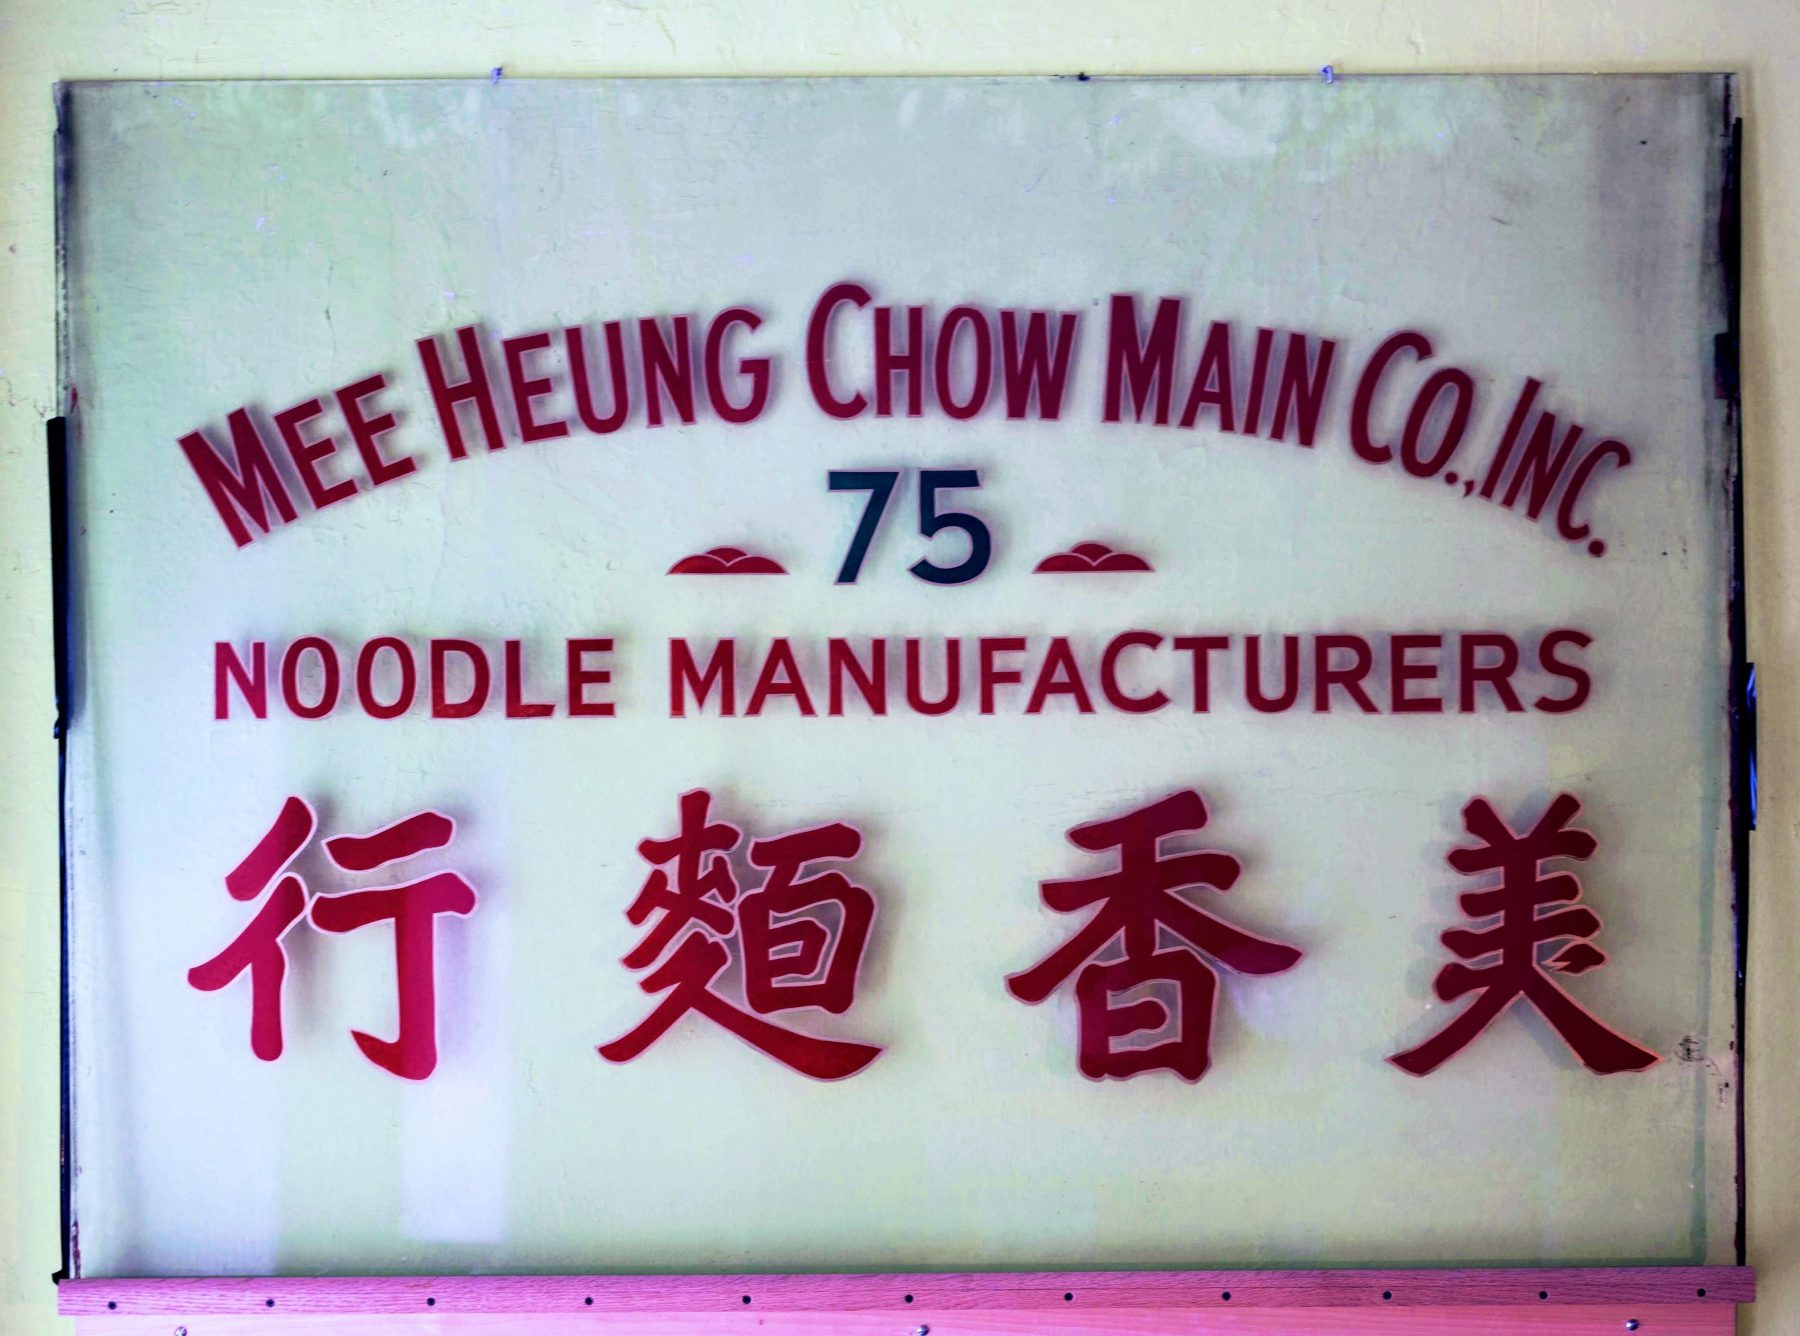 13 September 2019 Posted. Sign of the Mee Heung Chow Main Co., Museum of Chinese in America (MOCA) Collection. 美香面行招牌,美国华人博物馆(MOCA)馆藏